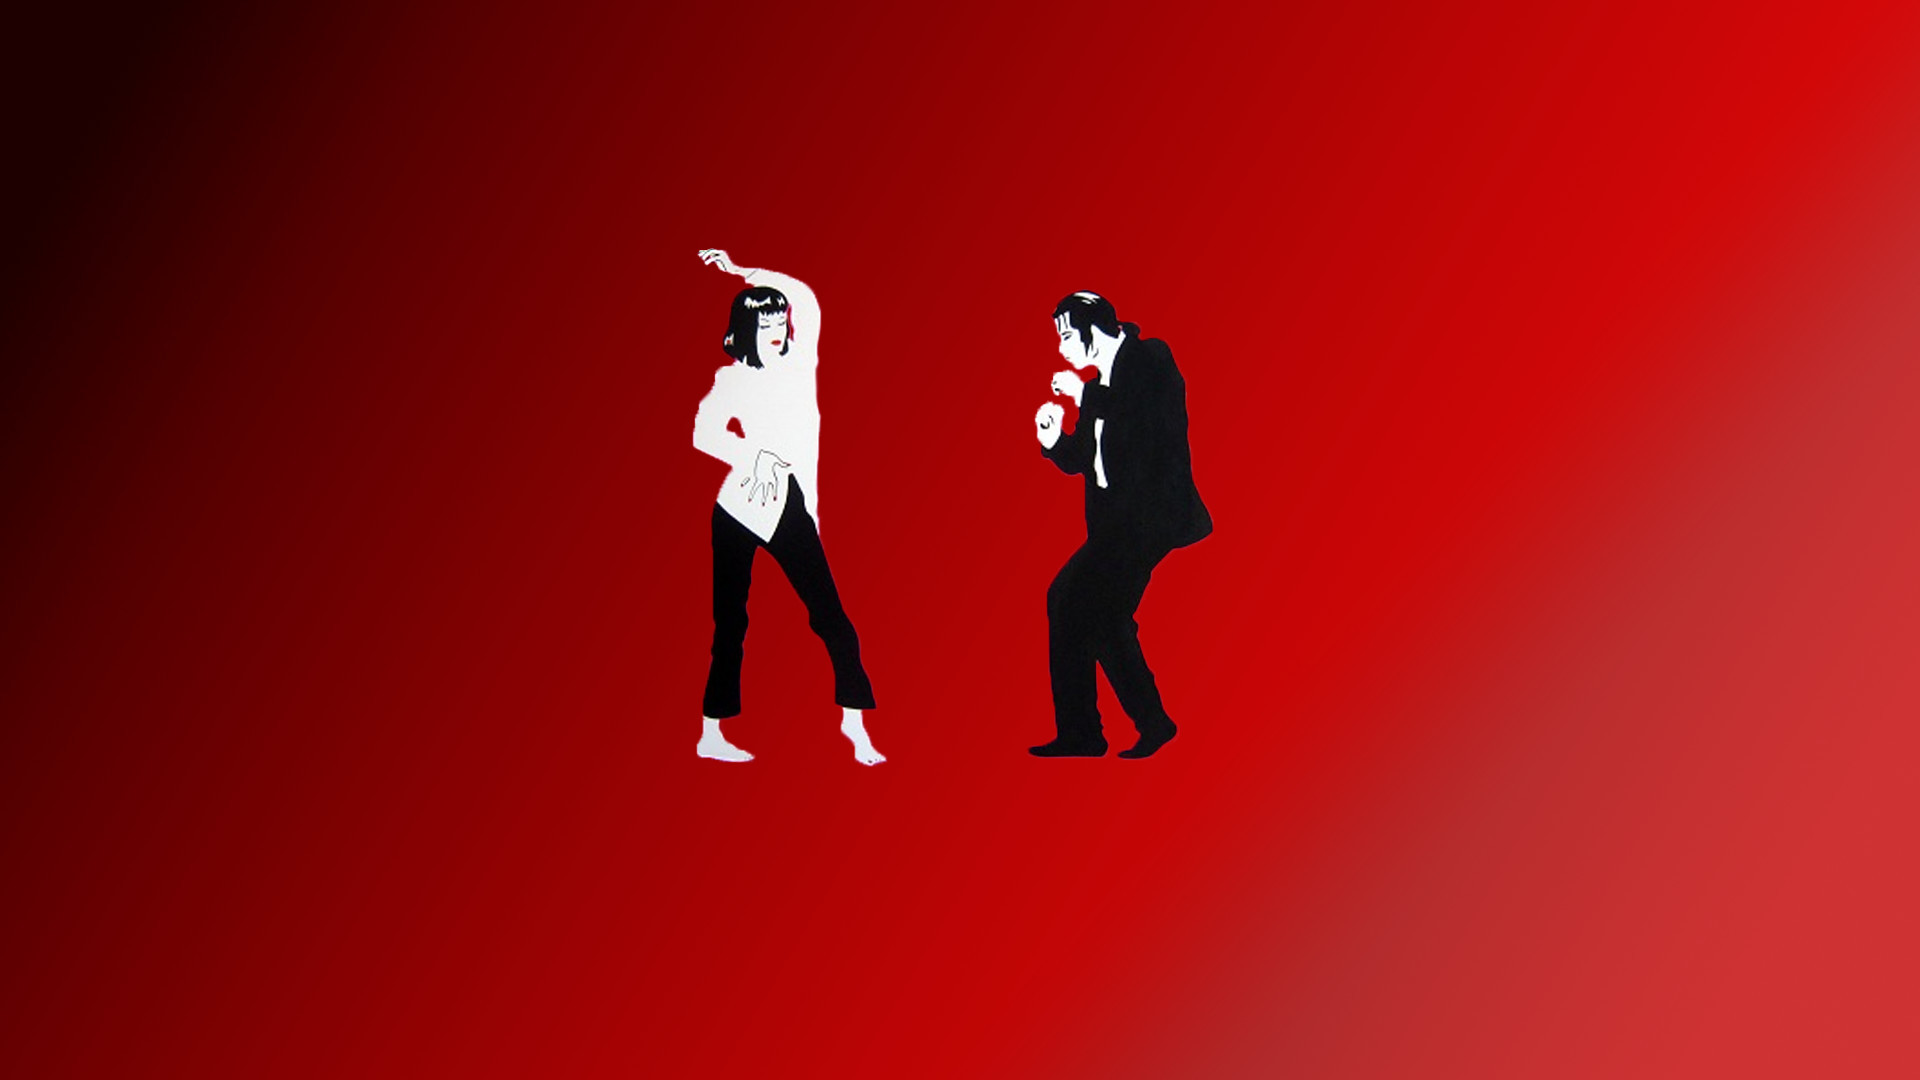 Pulp Fiction Wallpaper By YJoker On DeviantArt Awesome Pulp 1920×1080